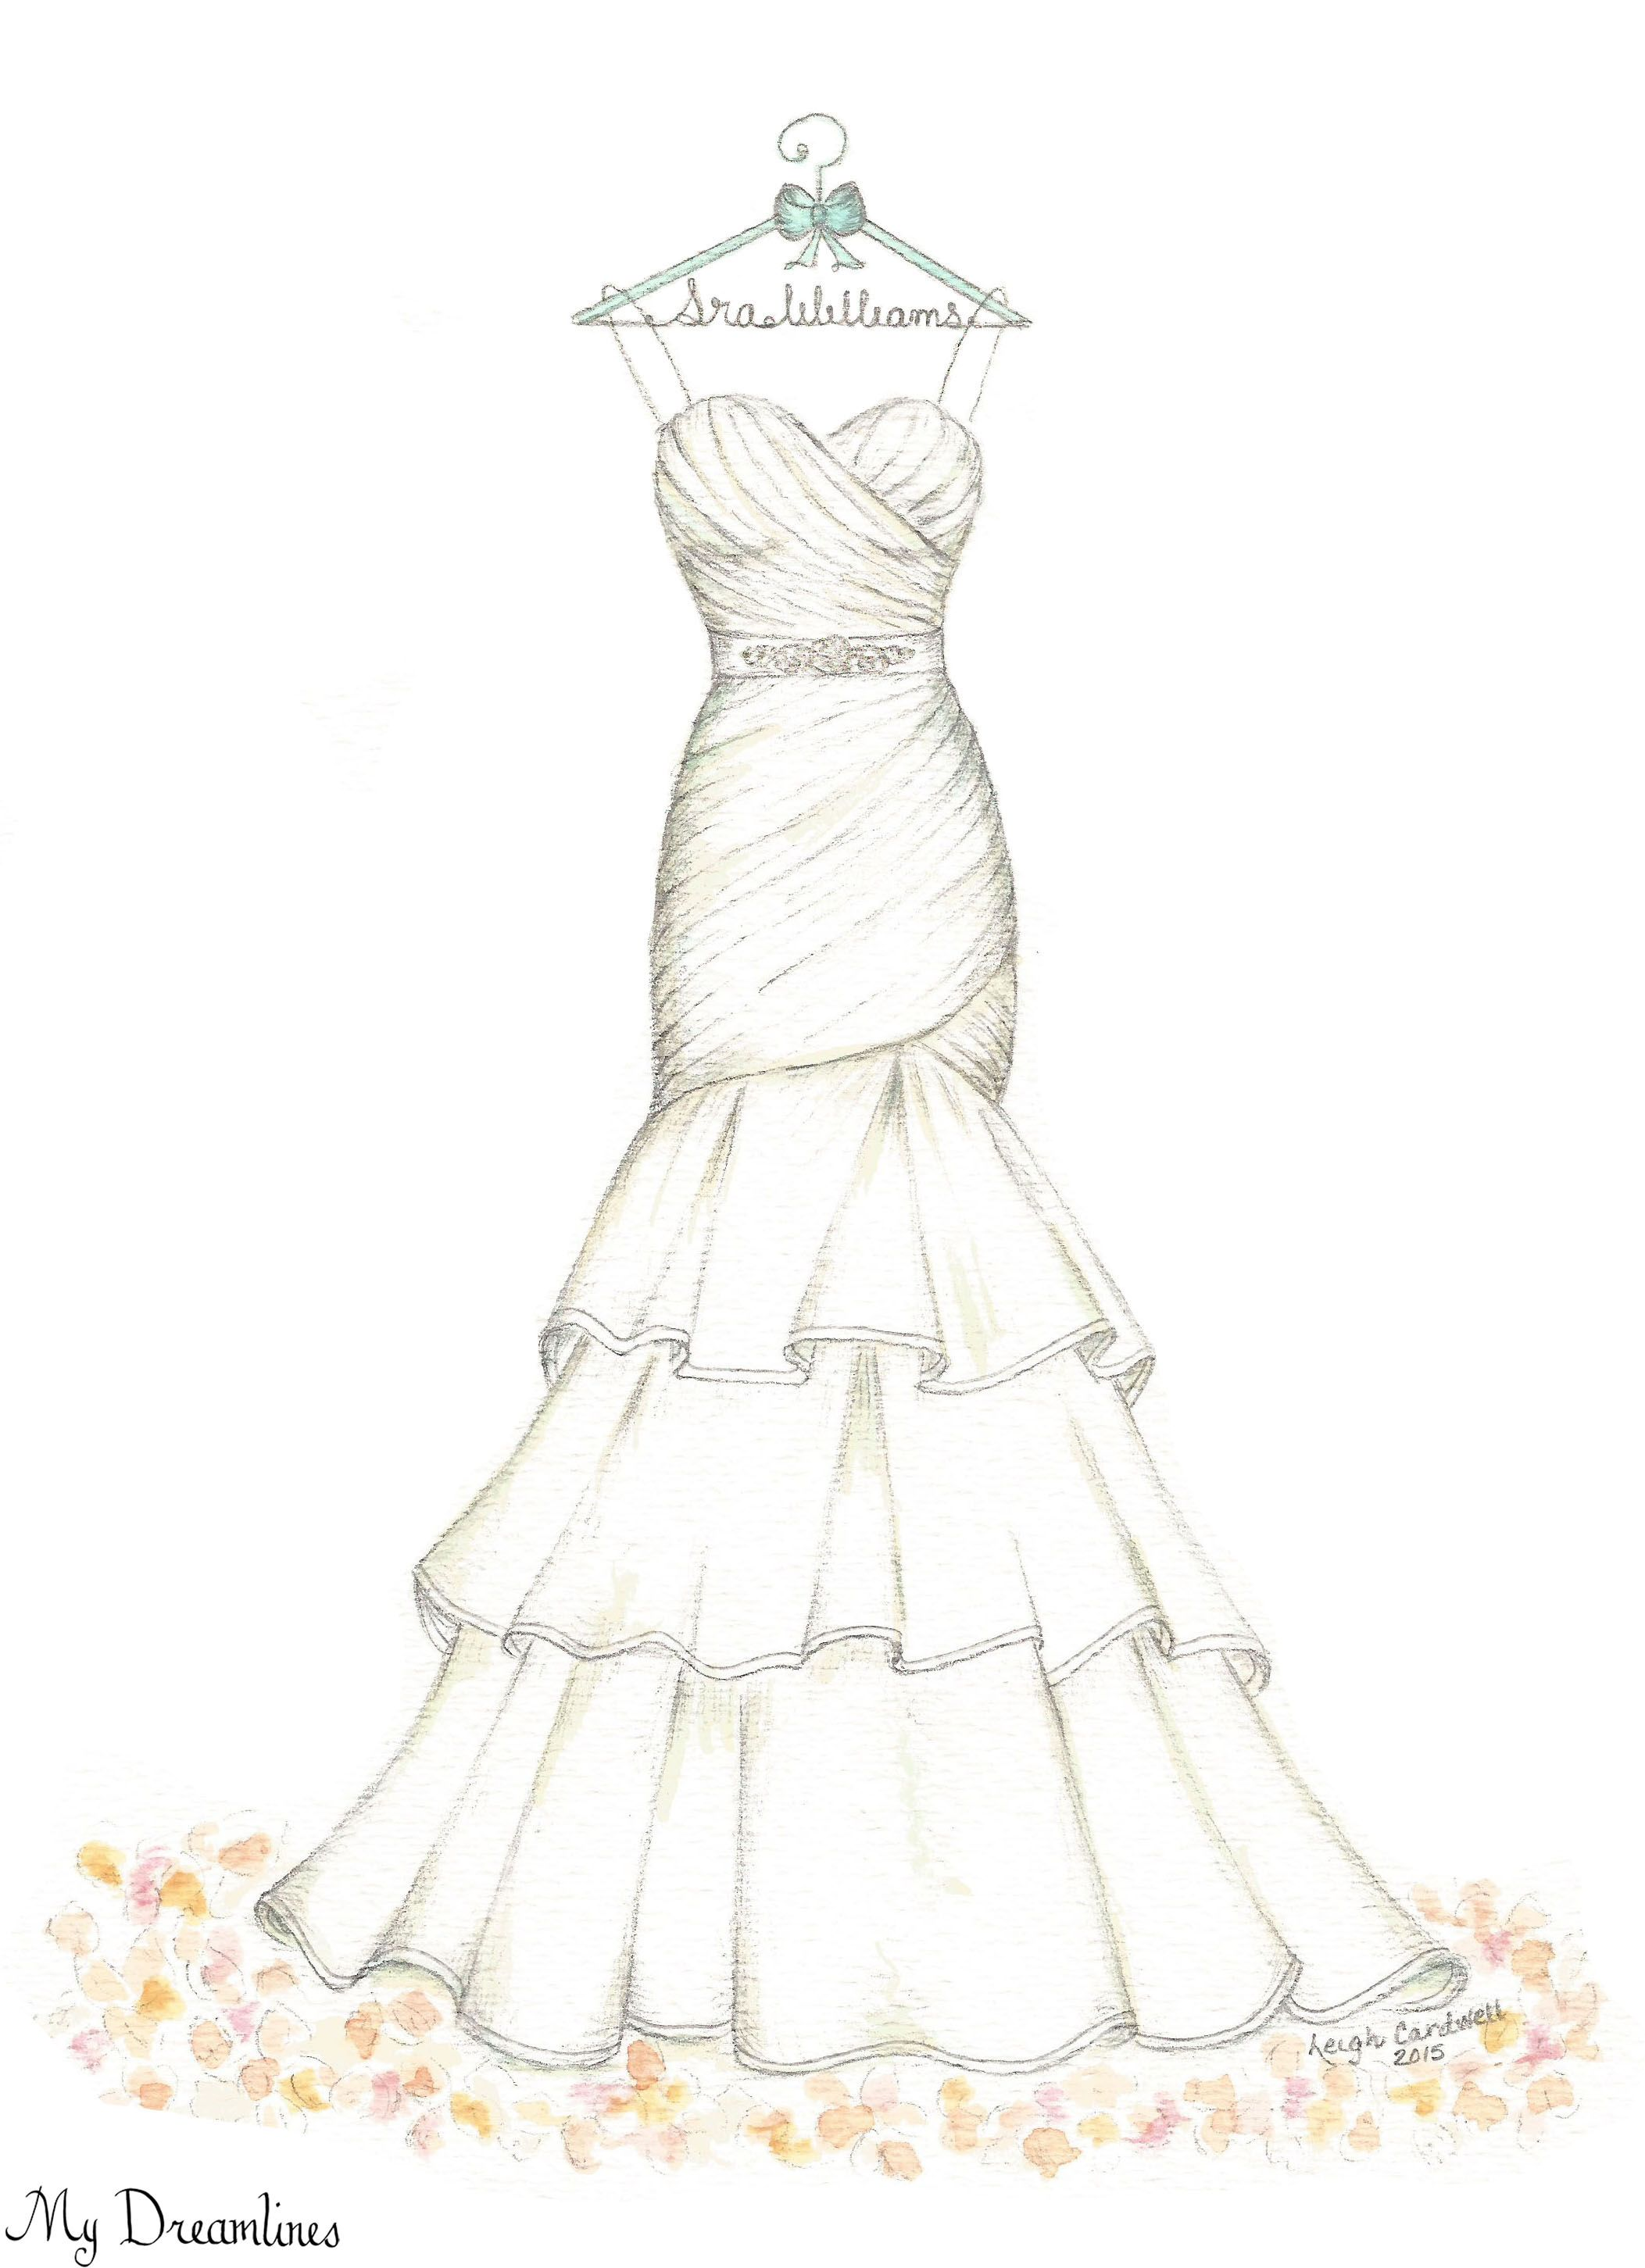 Dreamlines wedding dress sketch oneyearanniversarygift for How to find a wedding dress